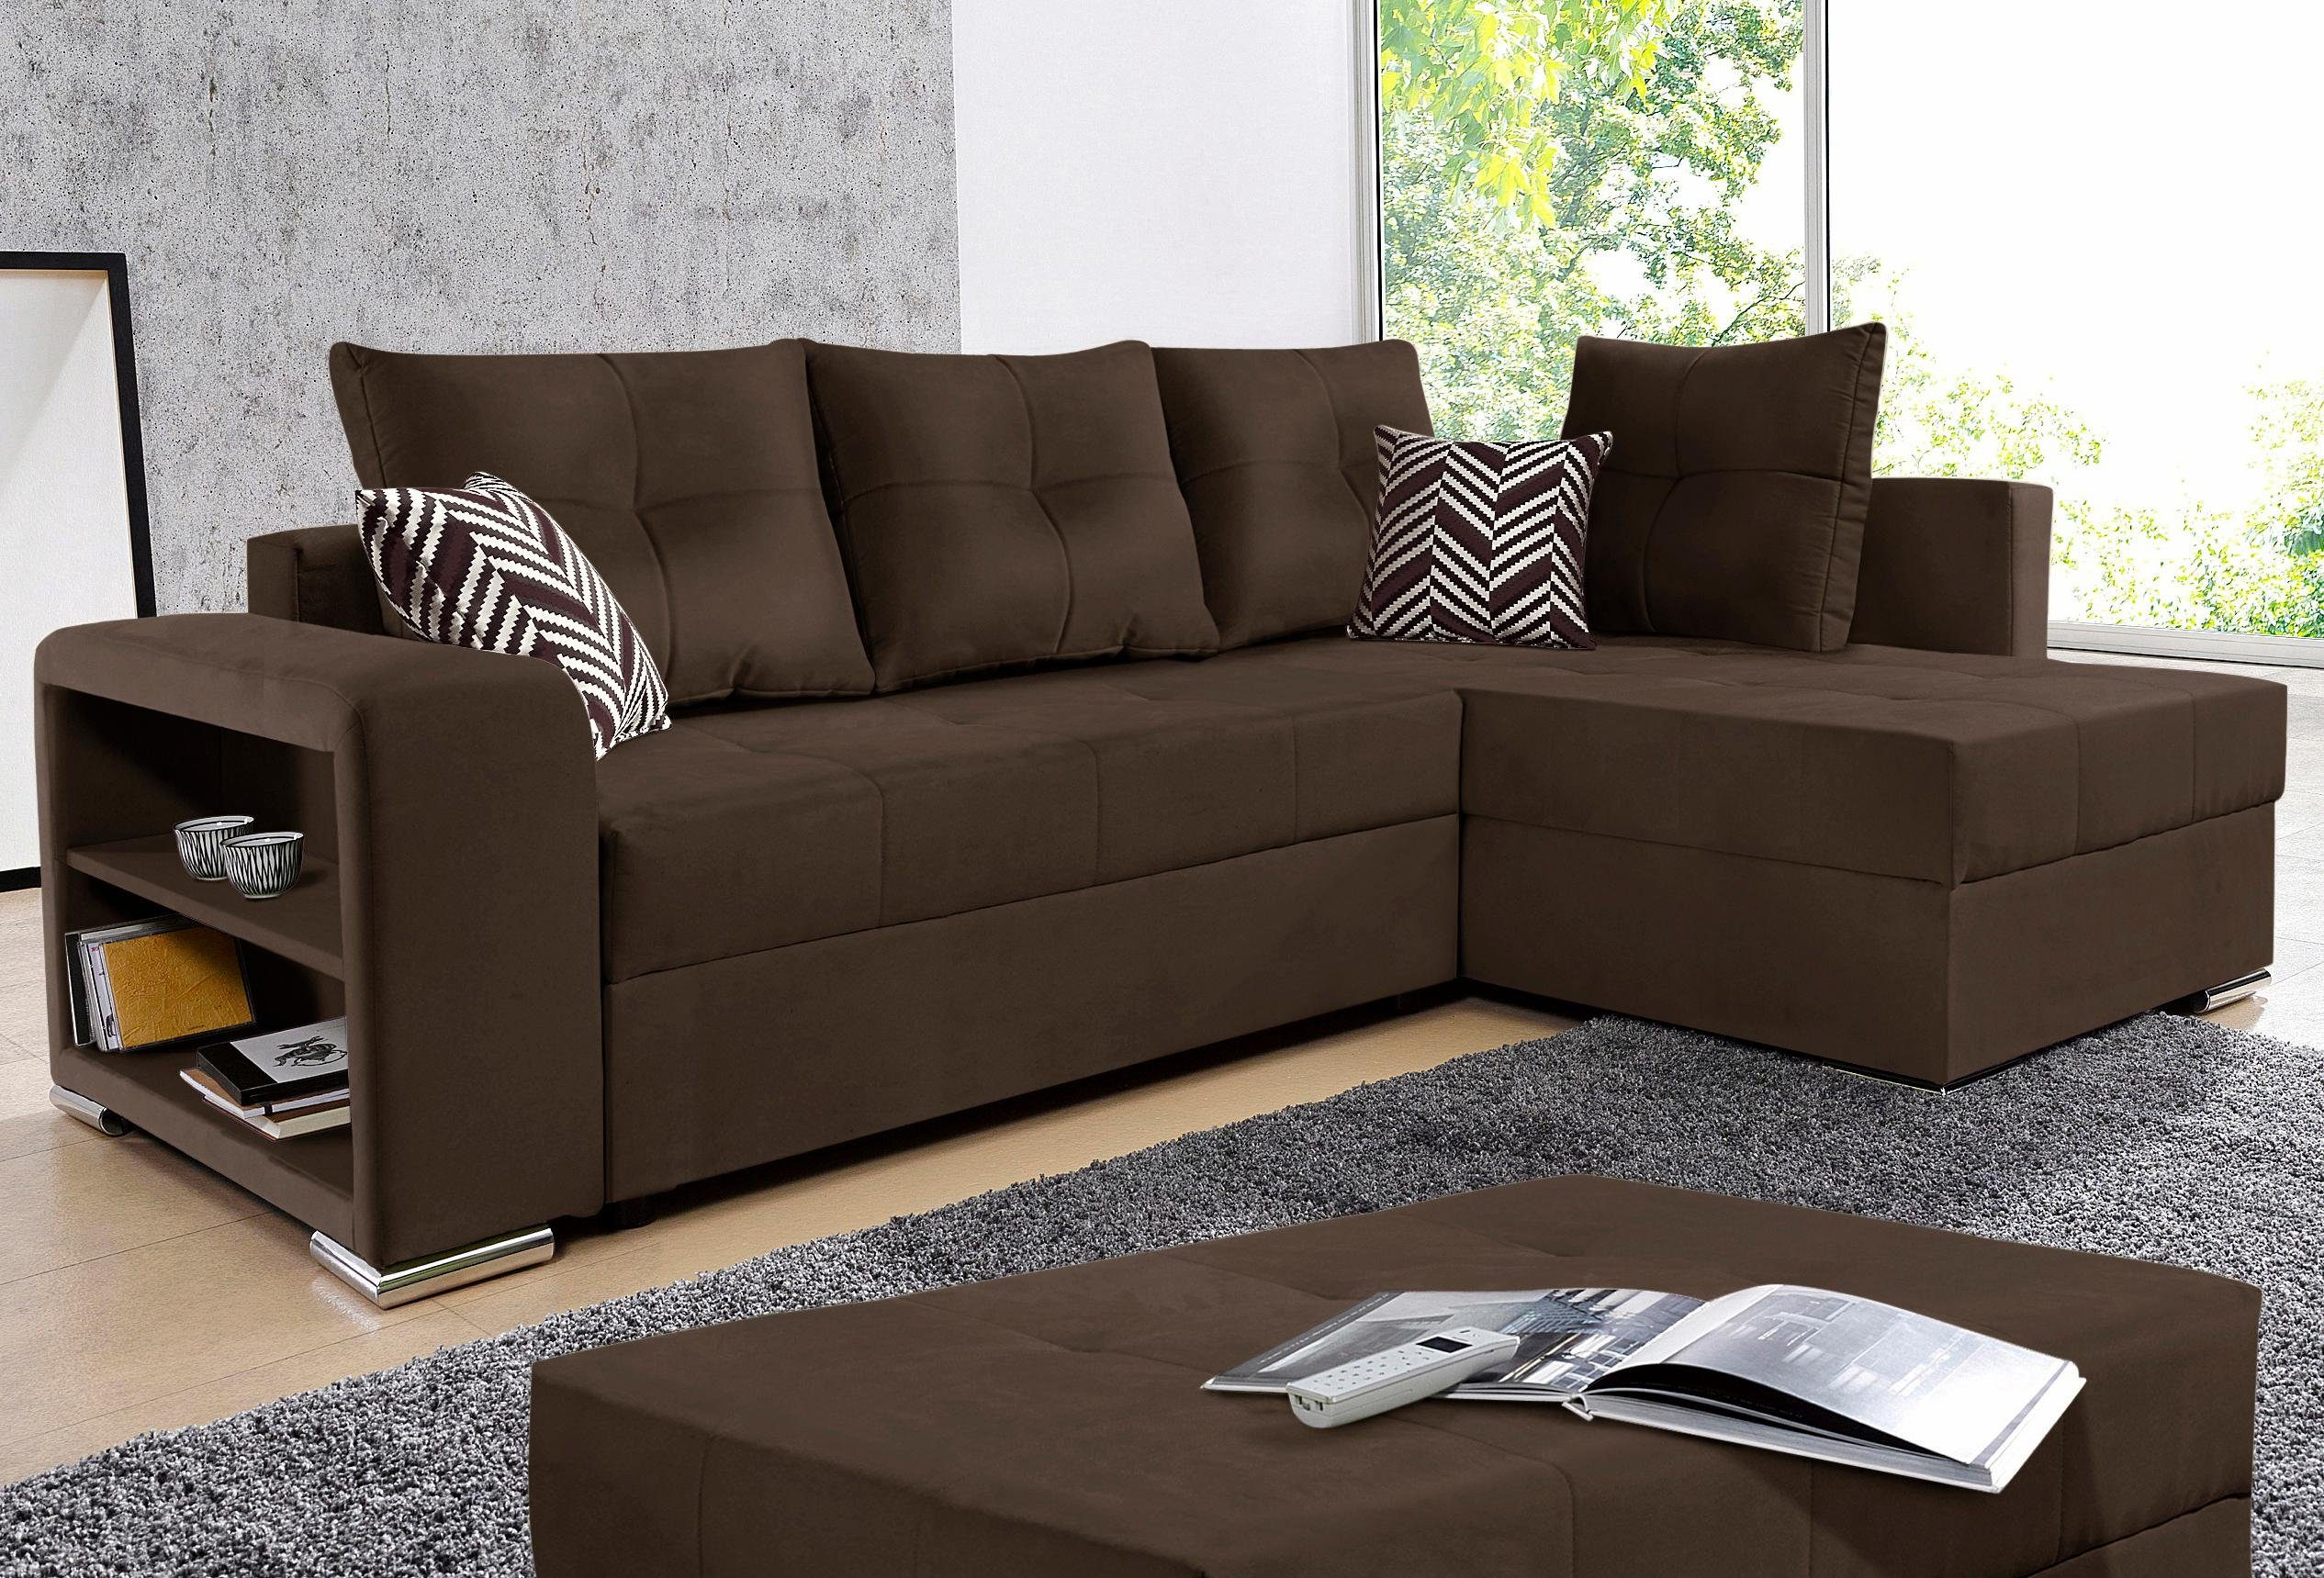 Ecksofa Mit Bettfunktion Collection Ab Ecksofa, Mit Bettfunktion, Inklusive